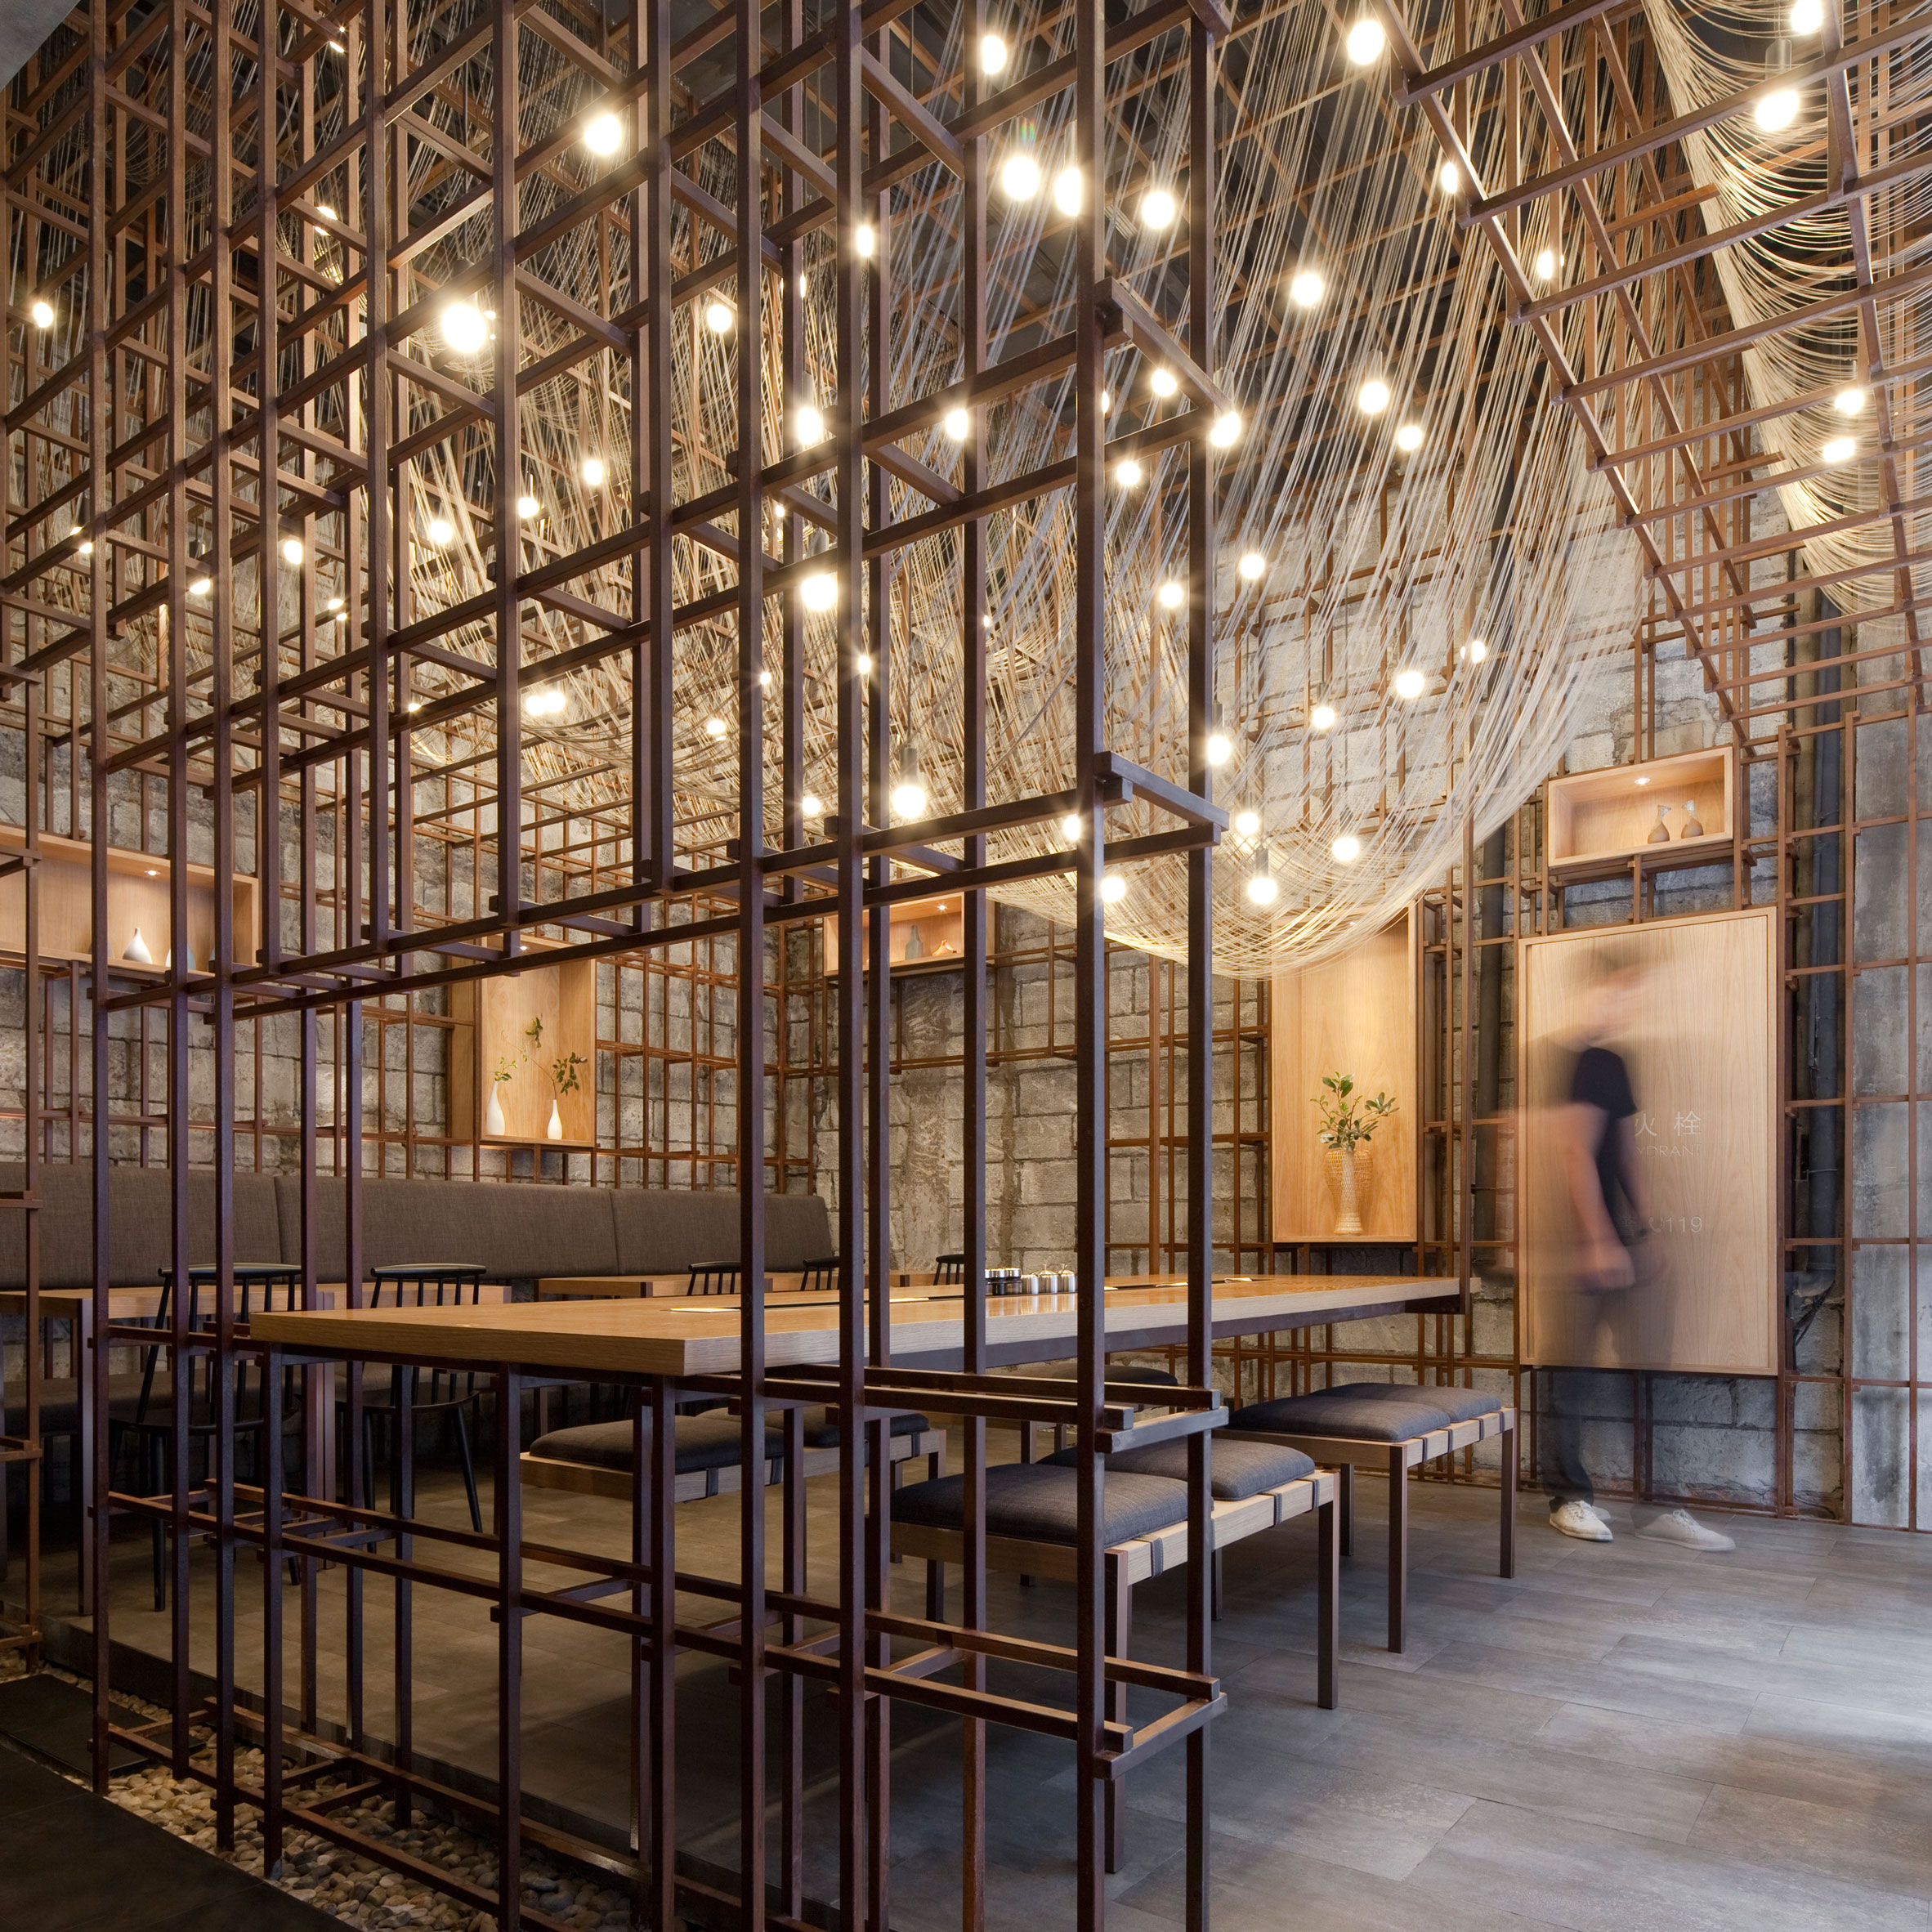 Chinese New Year: The Noodle Rack restaurant in Changsha by Lukstudio